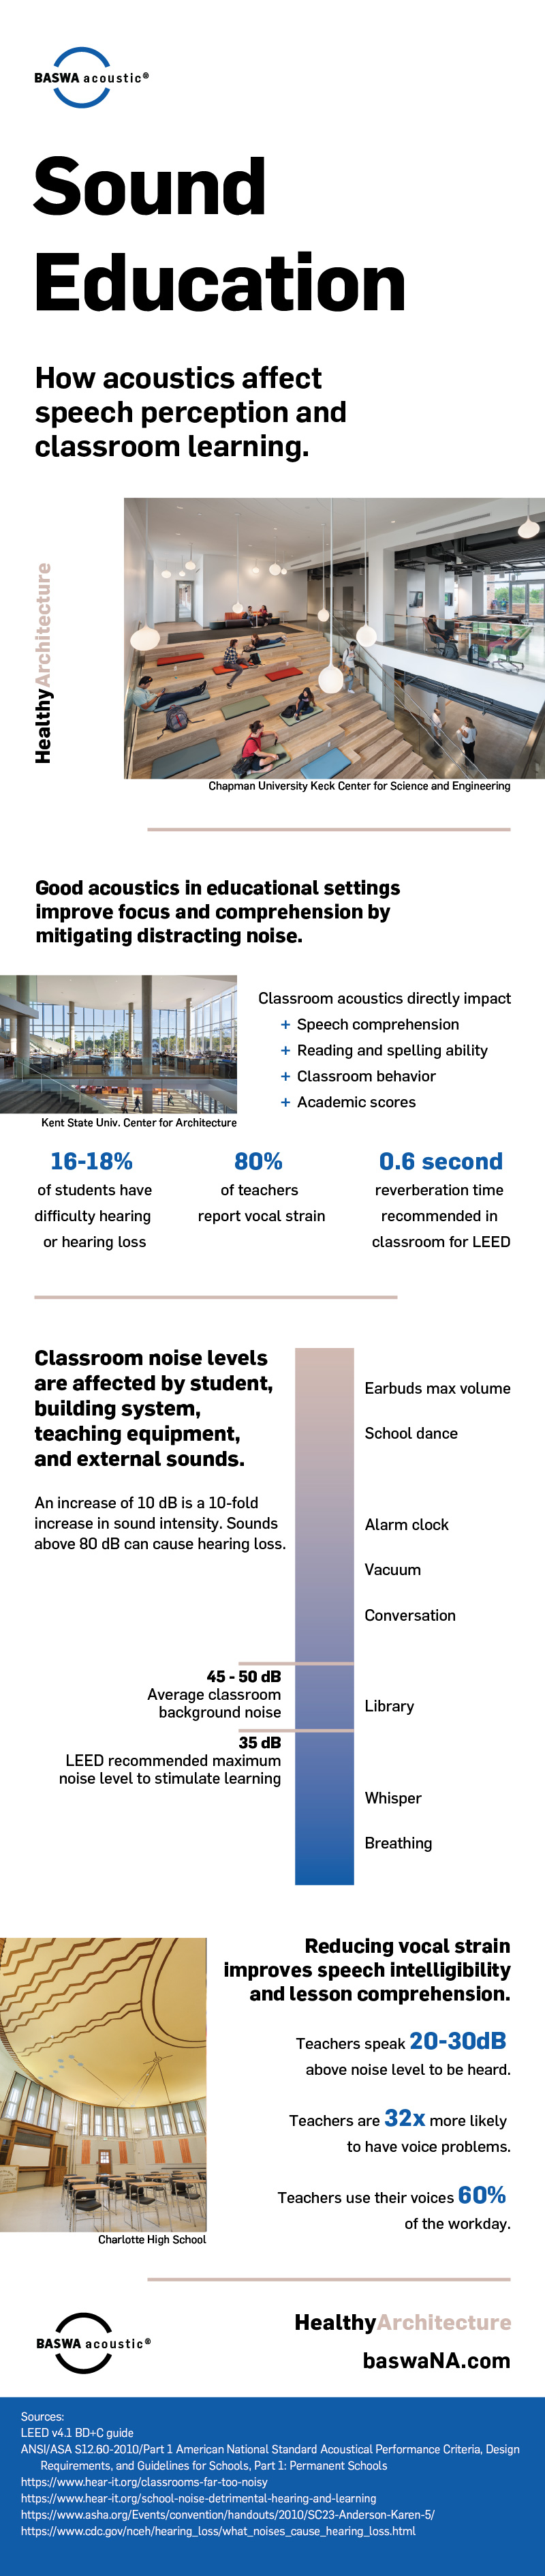 infographic on the ideal learning environment